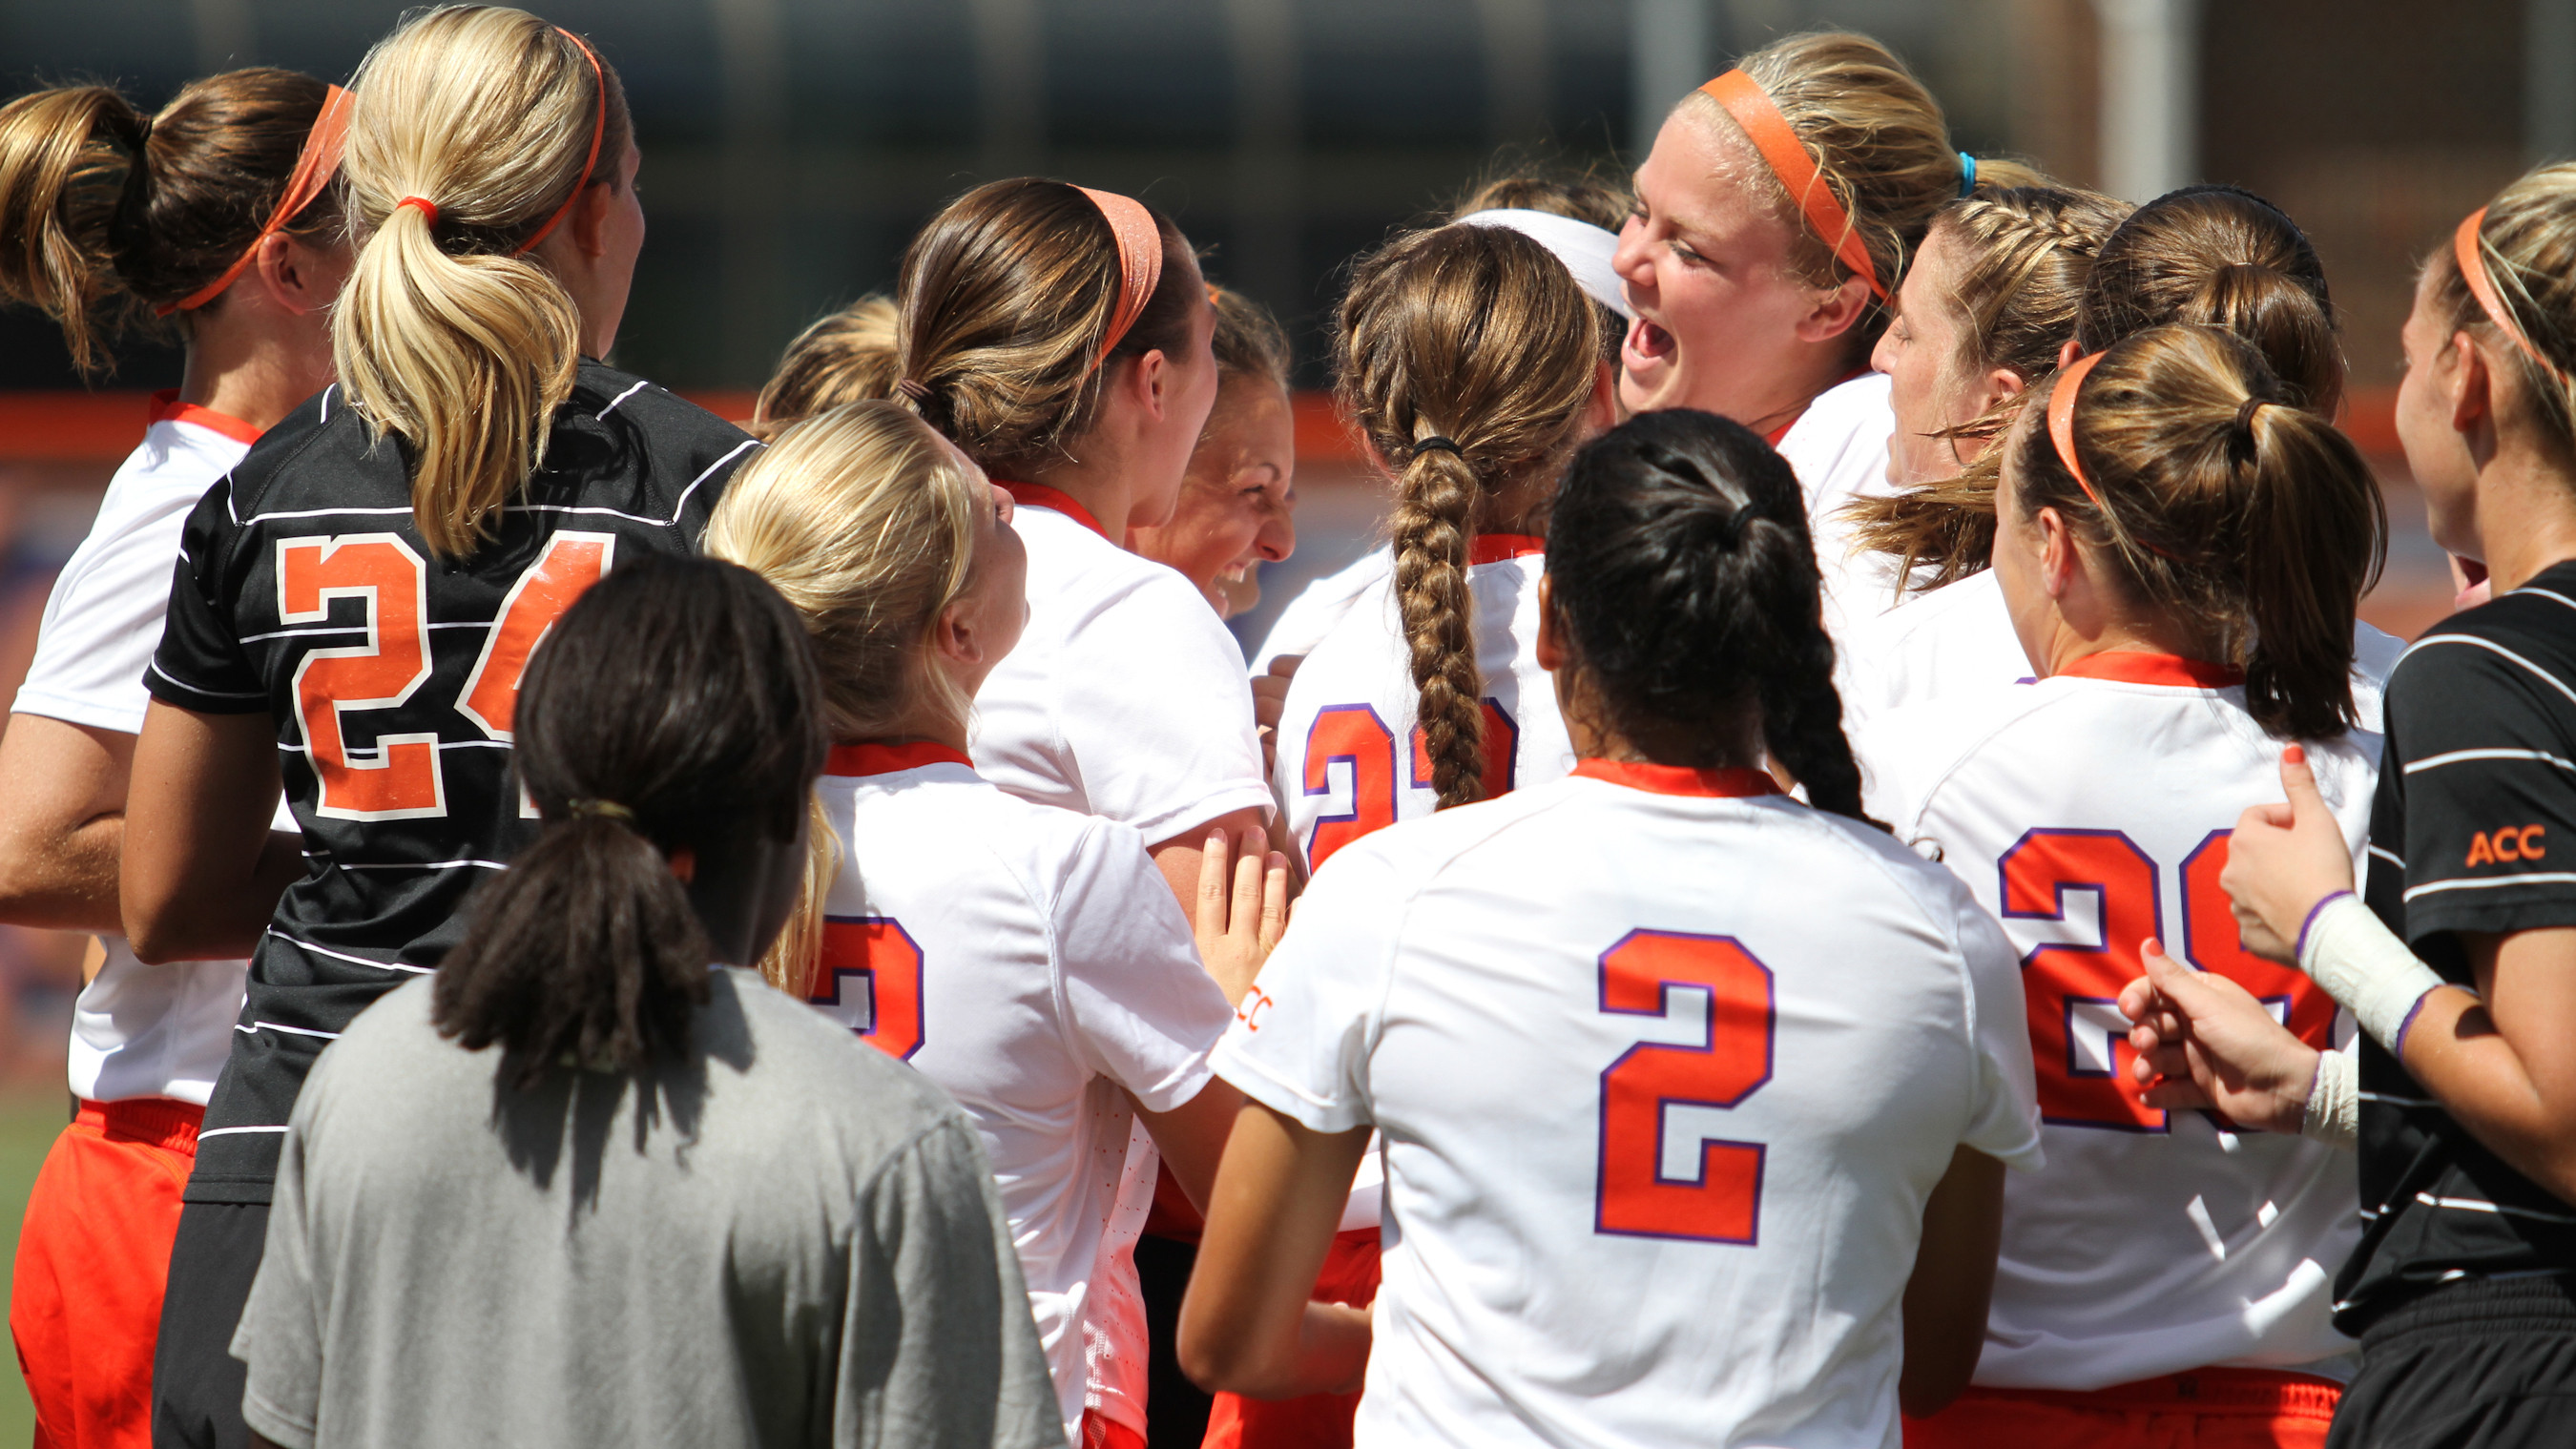 Tigers Travel to Syracuse Thursday for First ACC Road Game